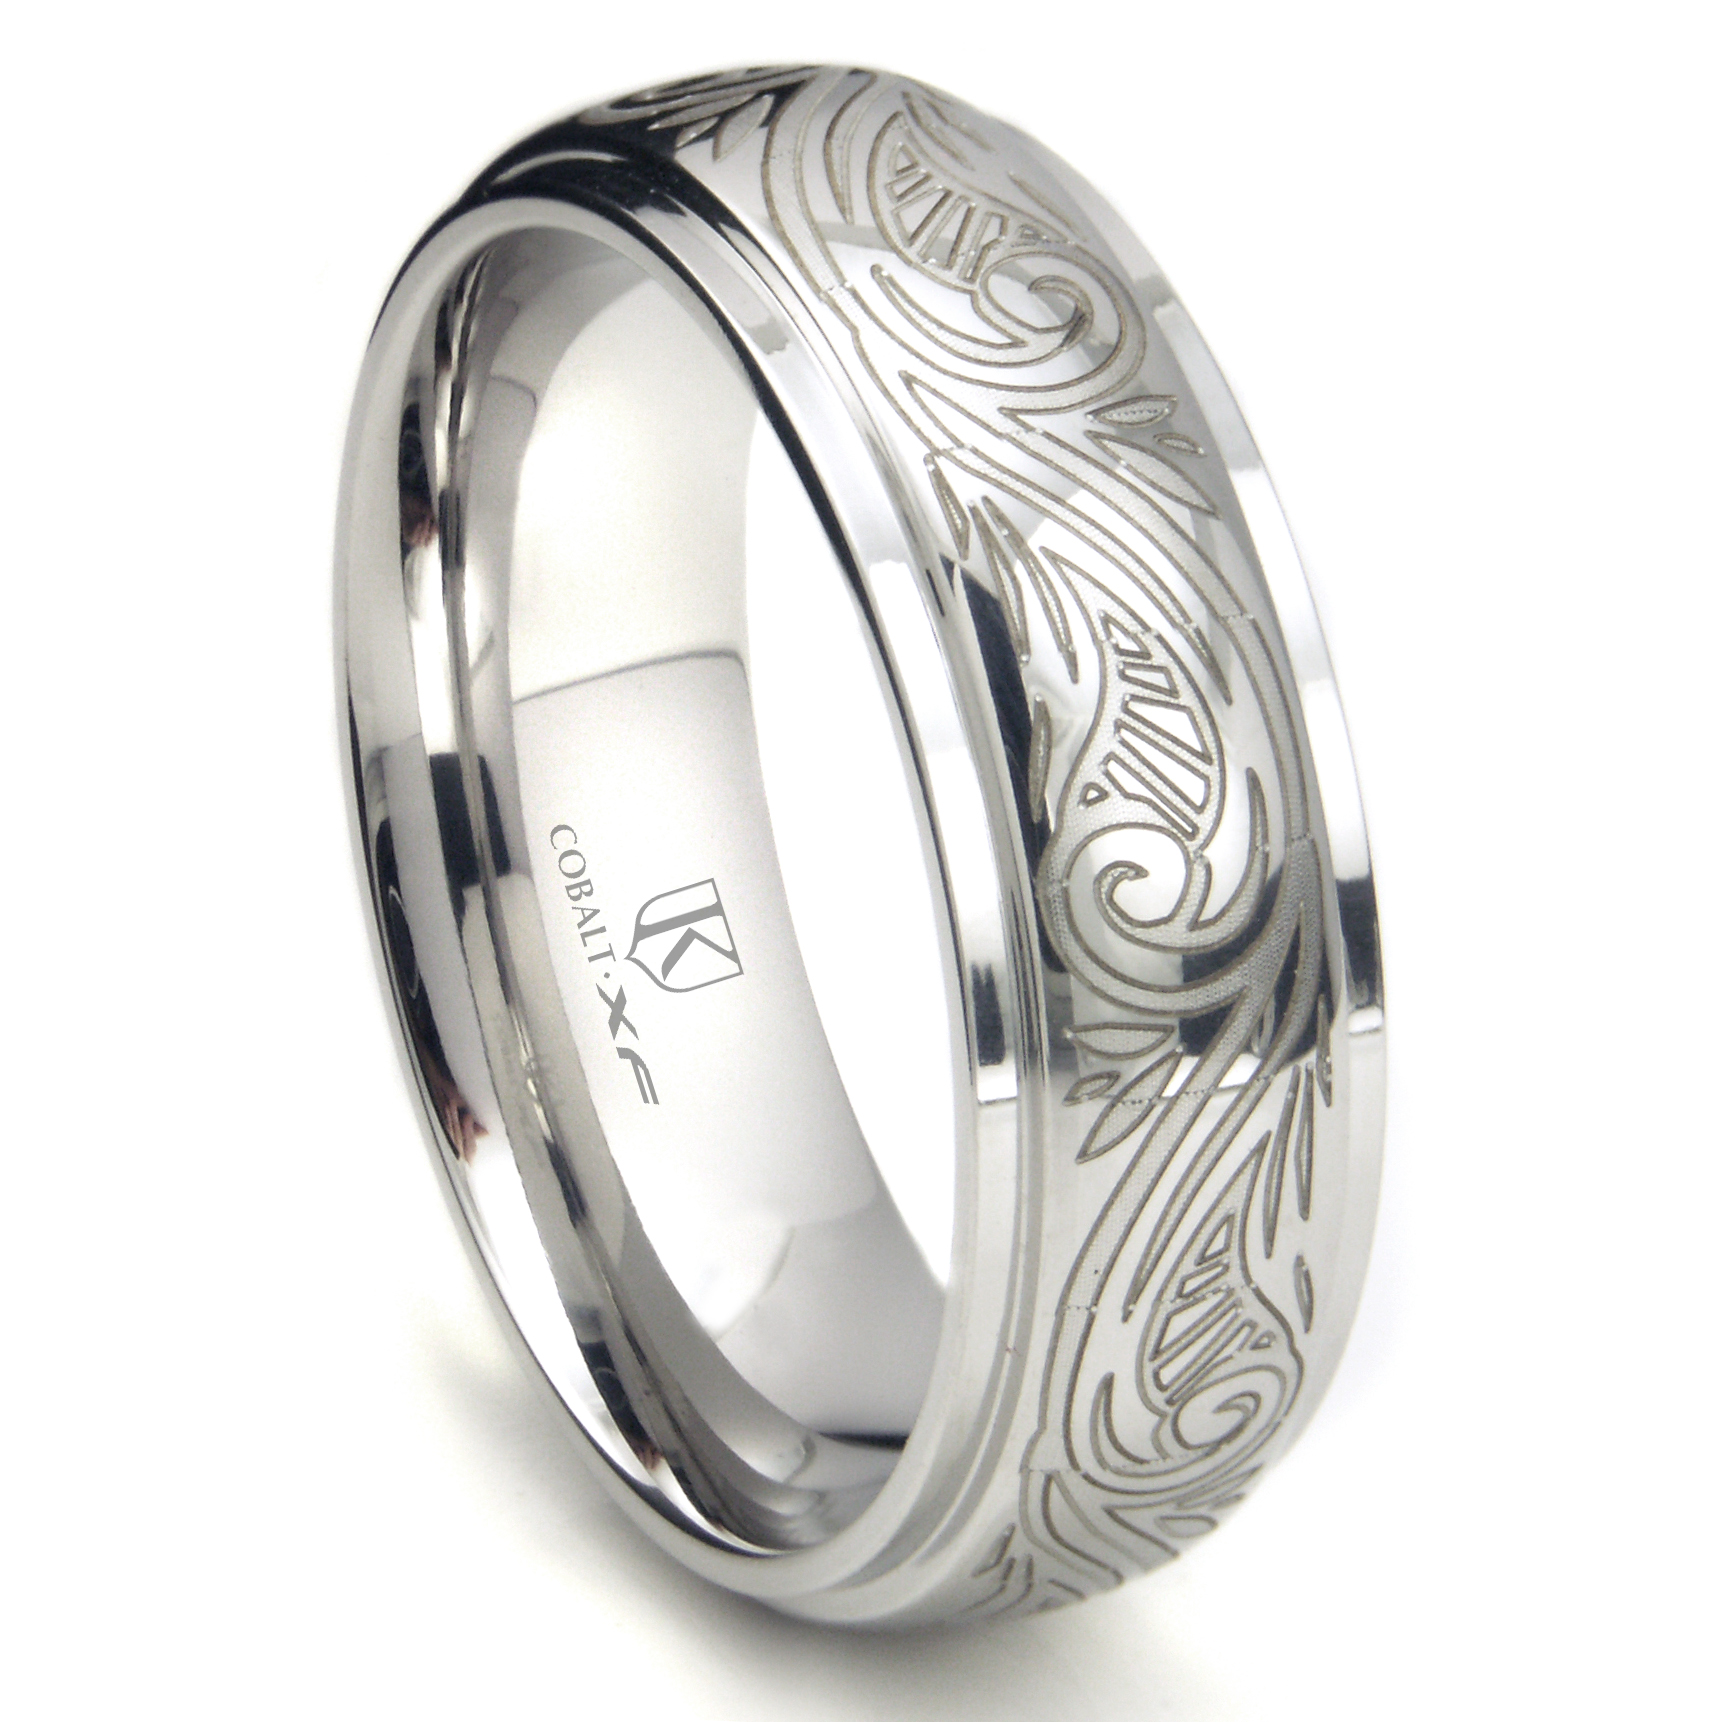 home cobalt rings loading zoom - Cobalt Wedding Rings